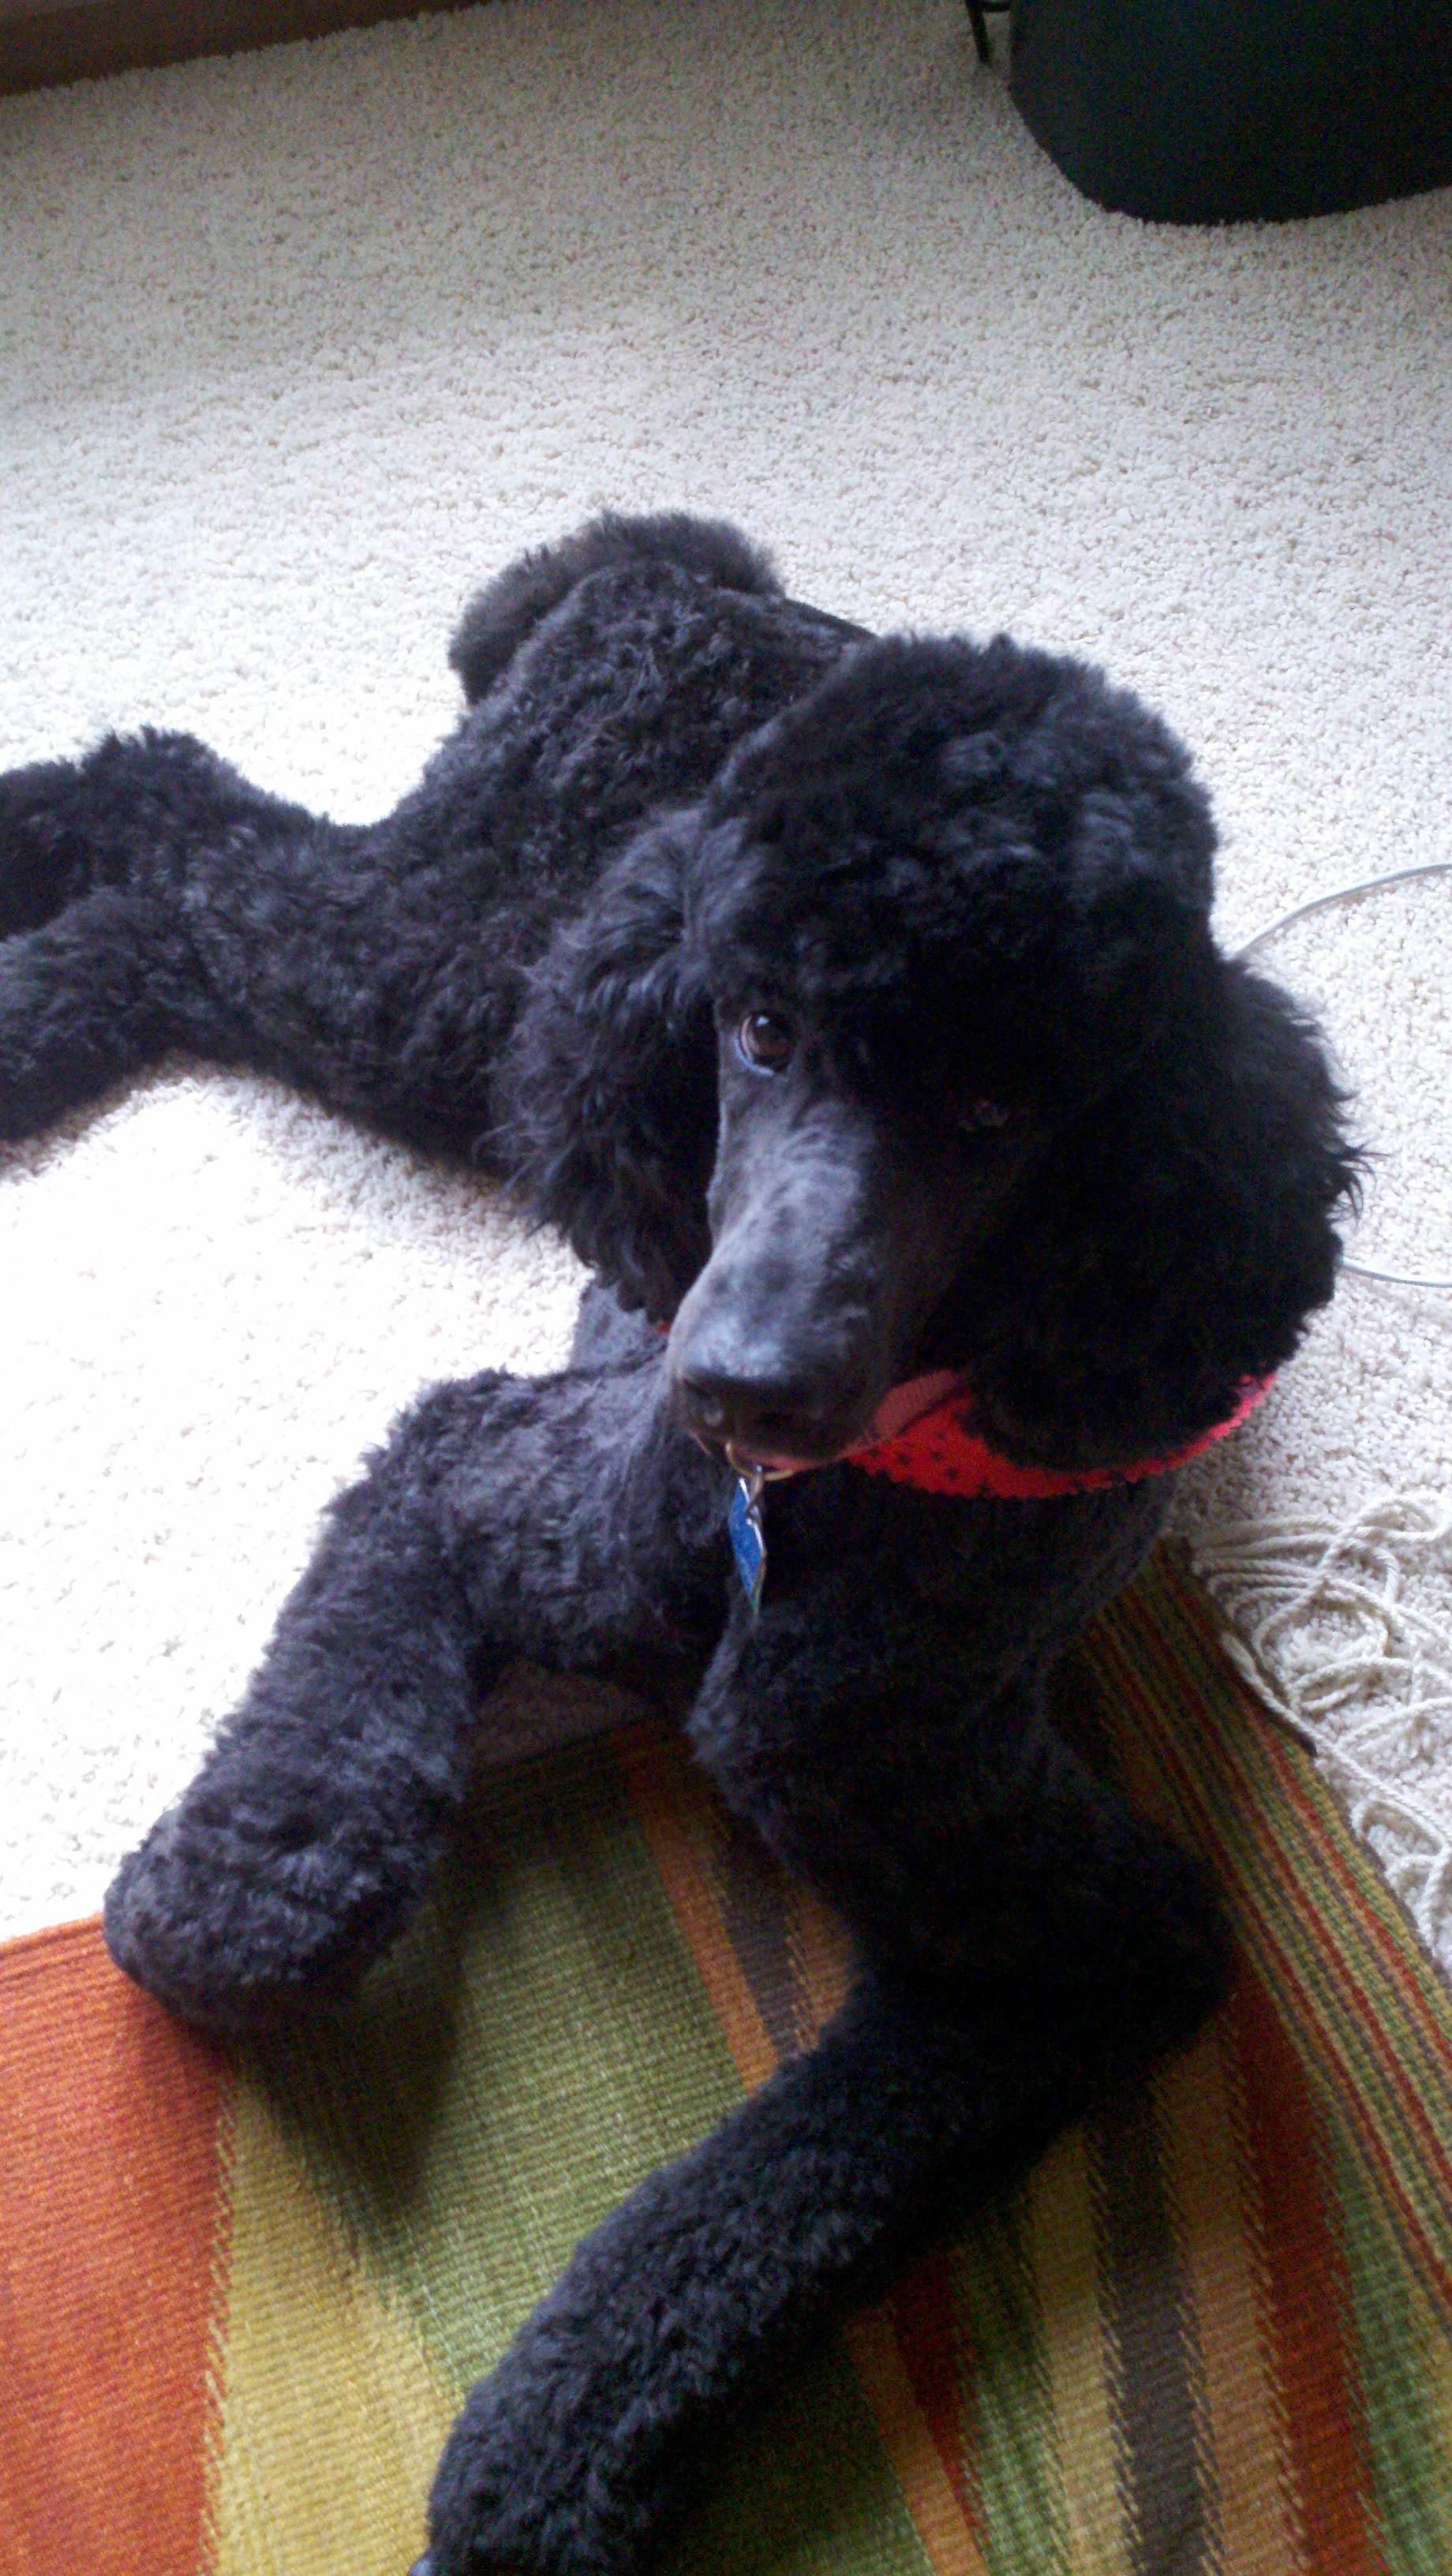 The many things we admire about the Active Poodle Dogs #poodlepup #tinypoodle #s... - #about #active #admire #Dogs #poodle #poodlepup #things #tinypoodle